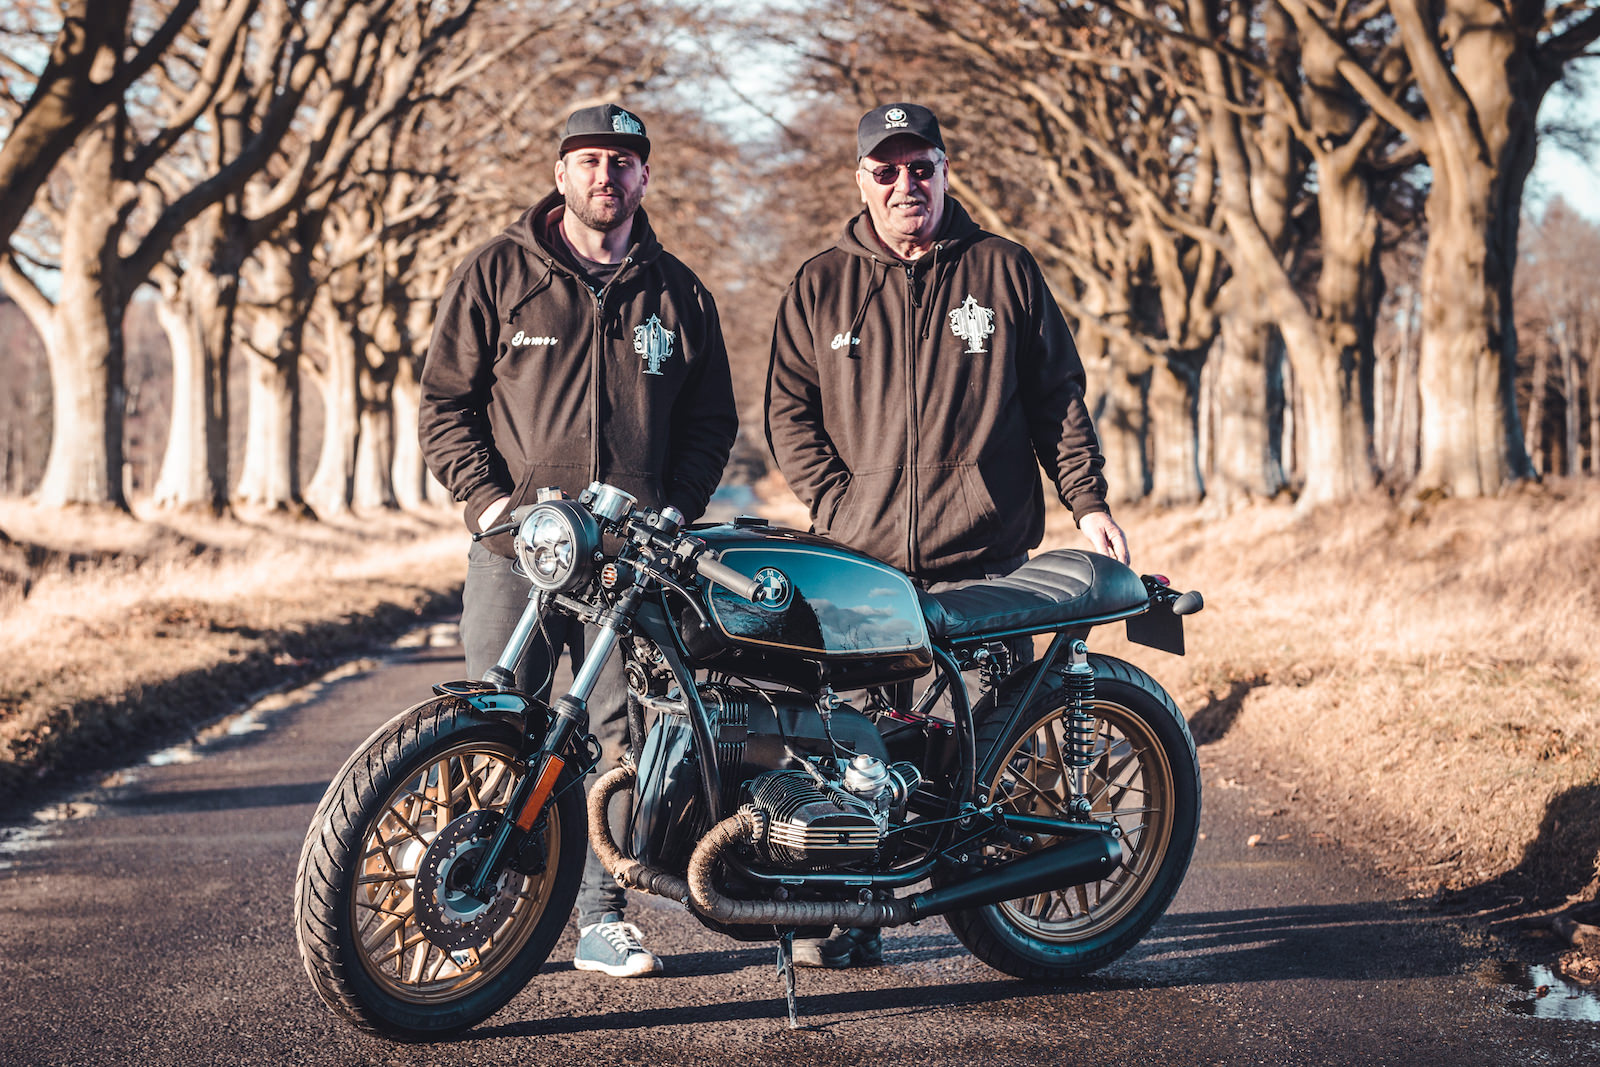 A Clean Bmw R45 Cafe Racer By Scottish Garage Jm Customs